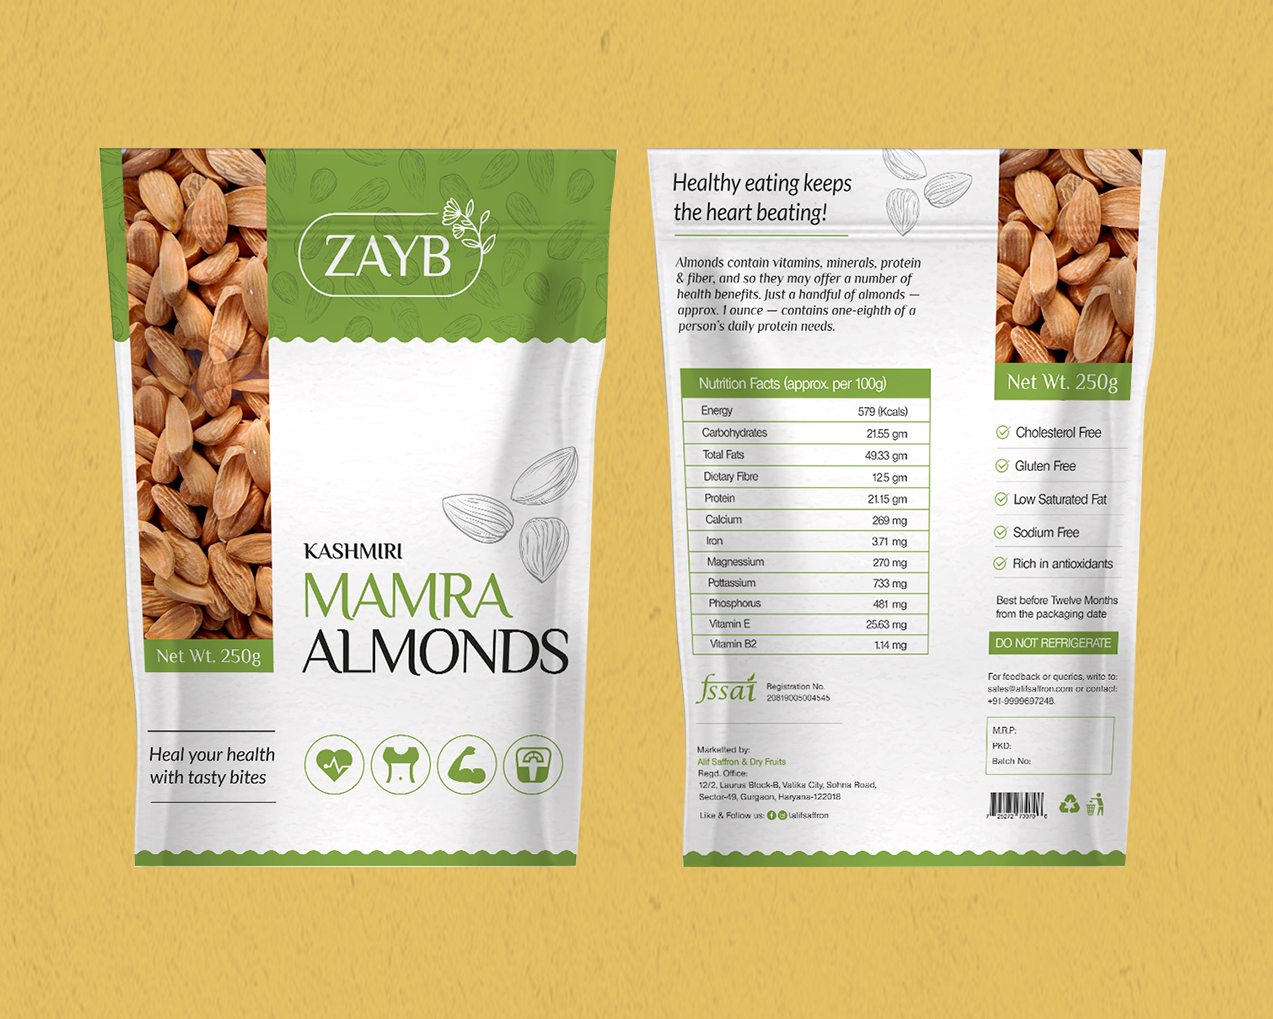 Mamra Almond Packaging